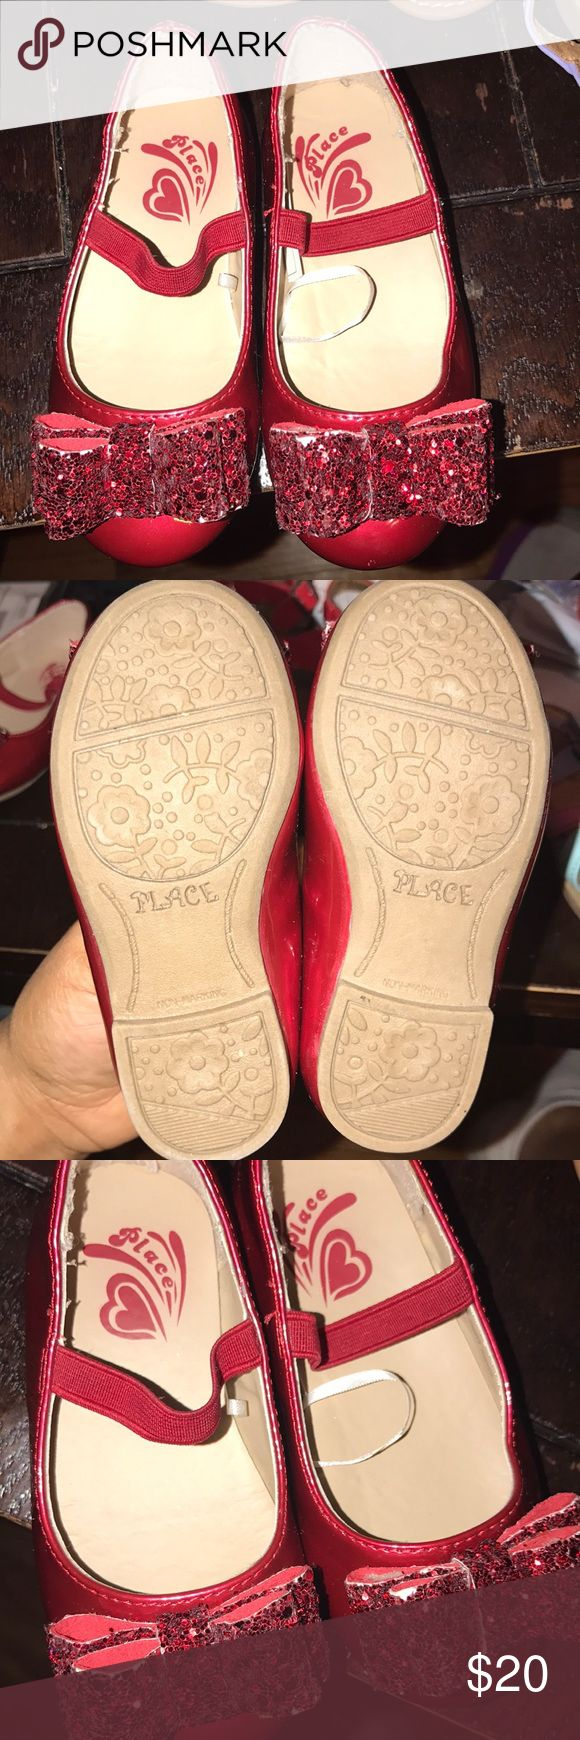 Dorothy Red Shoes toddler girl Children's place patent Leather with glitter bow size 6c toddler good condition flaw sequin chips on bow not very noticeable worn twice Children's Place Shoes Baby & Walker